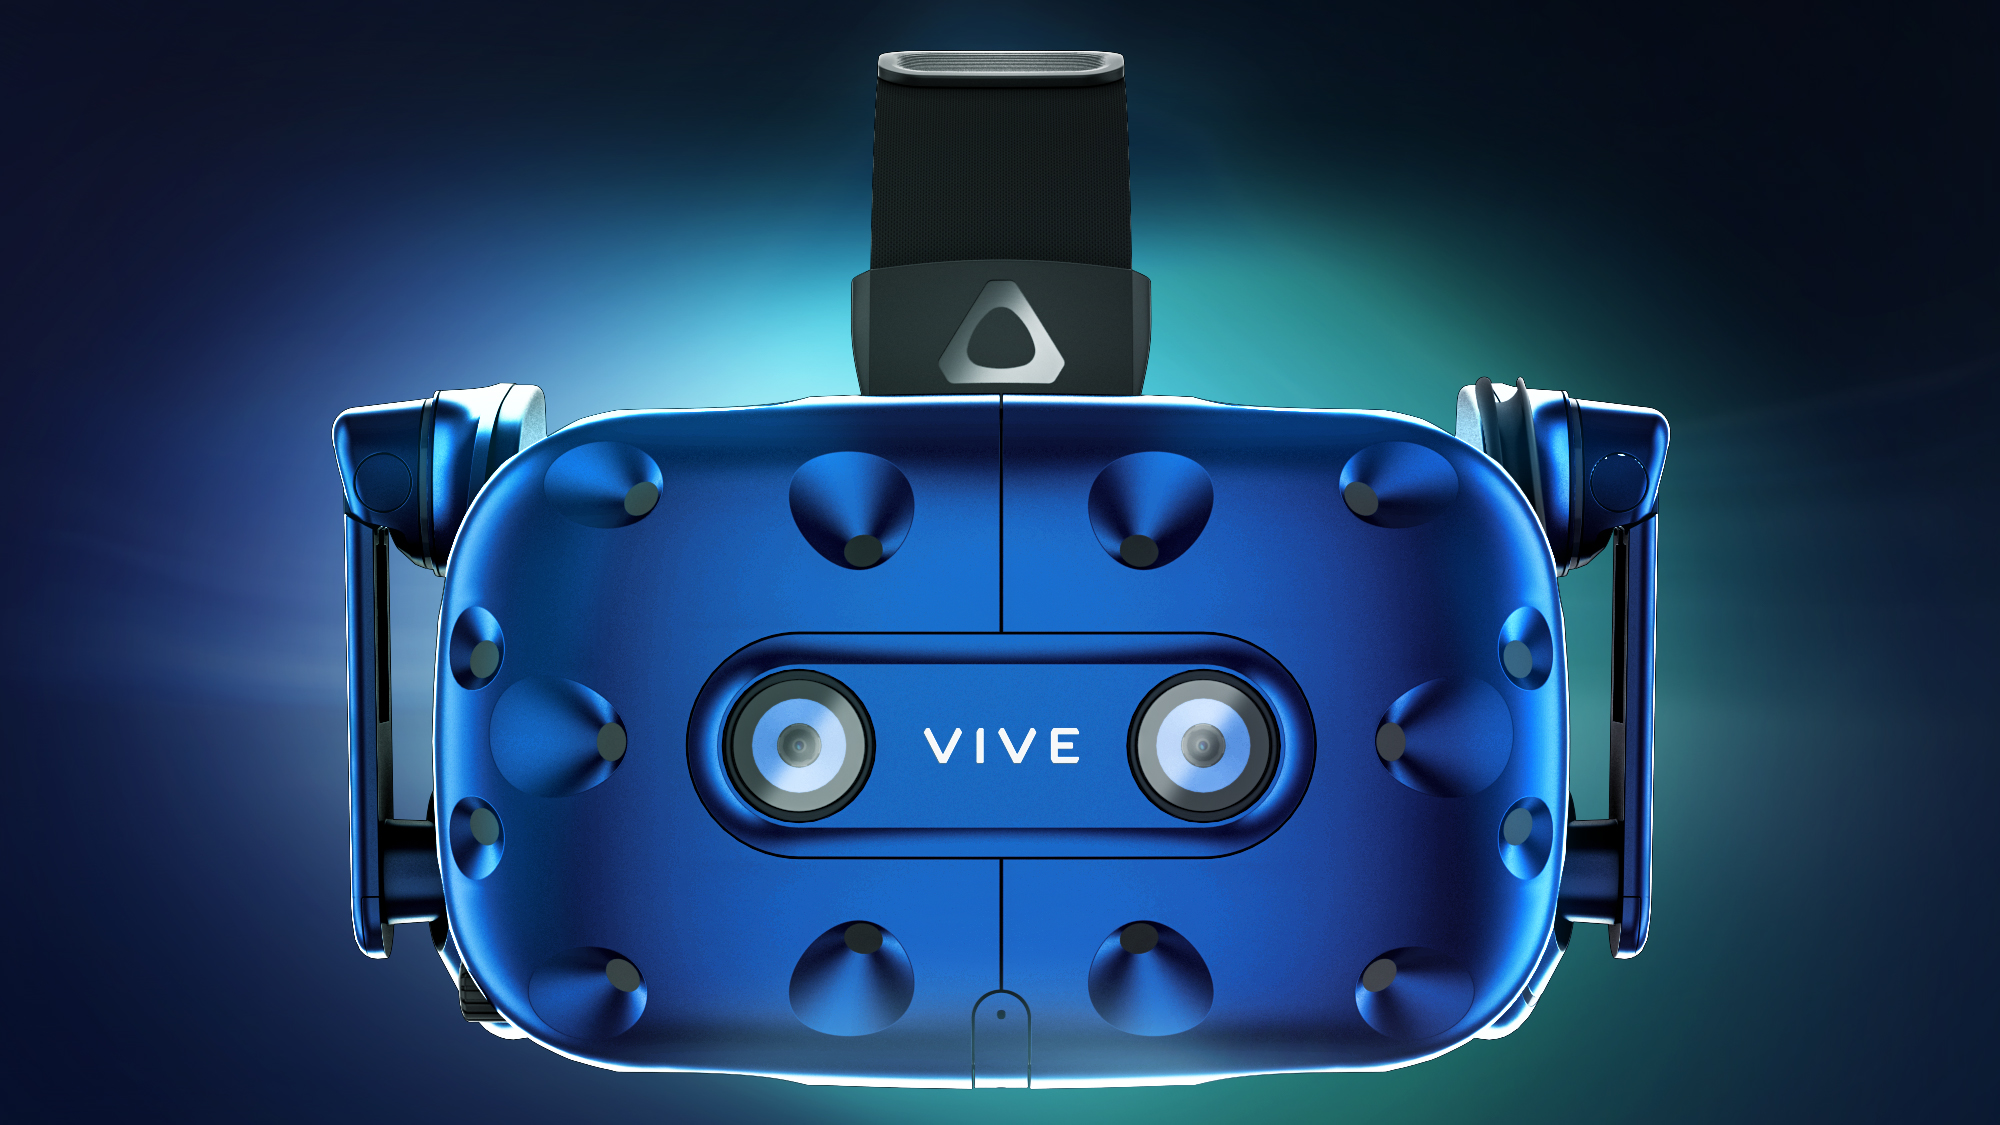 The HTC Vive Pro VR headset is getting eye tracking support